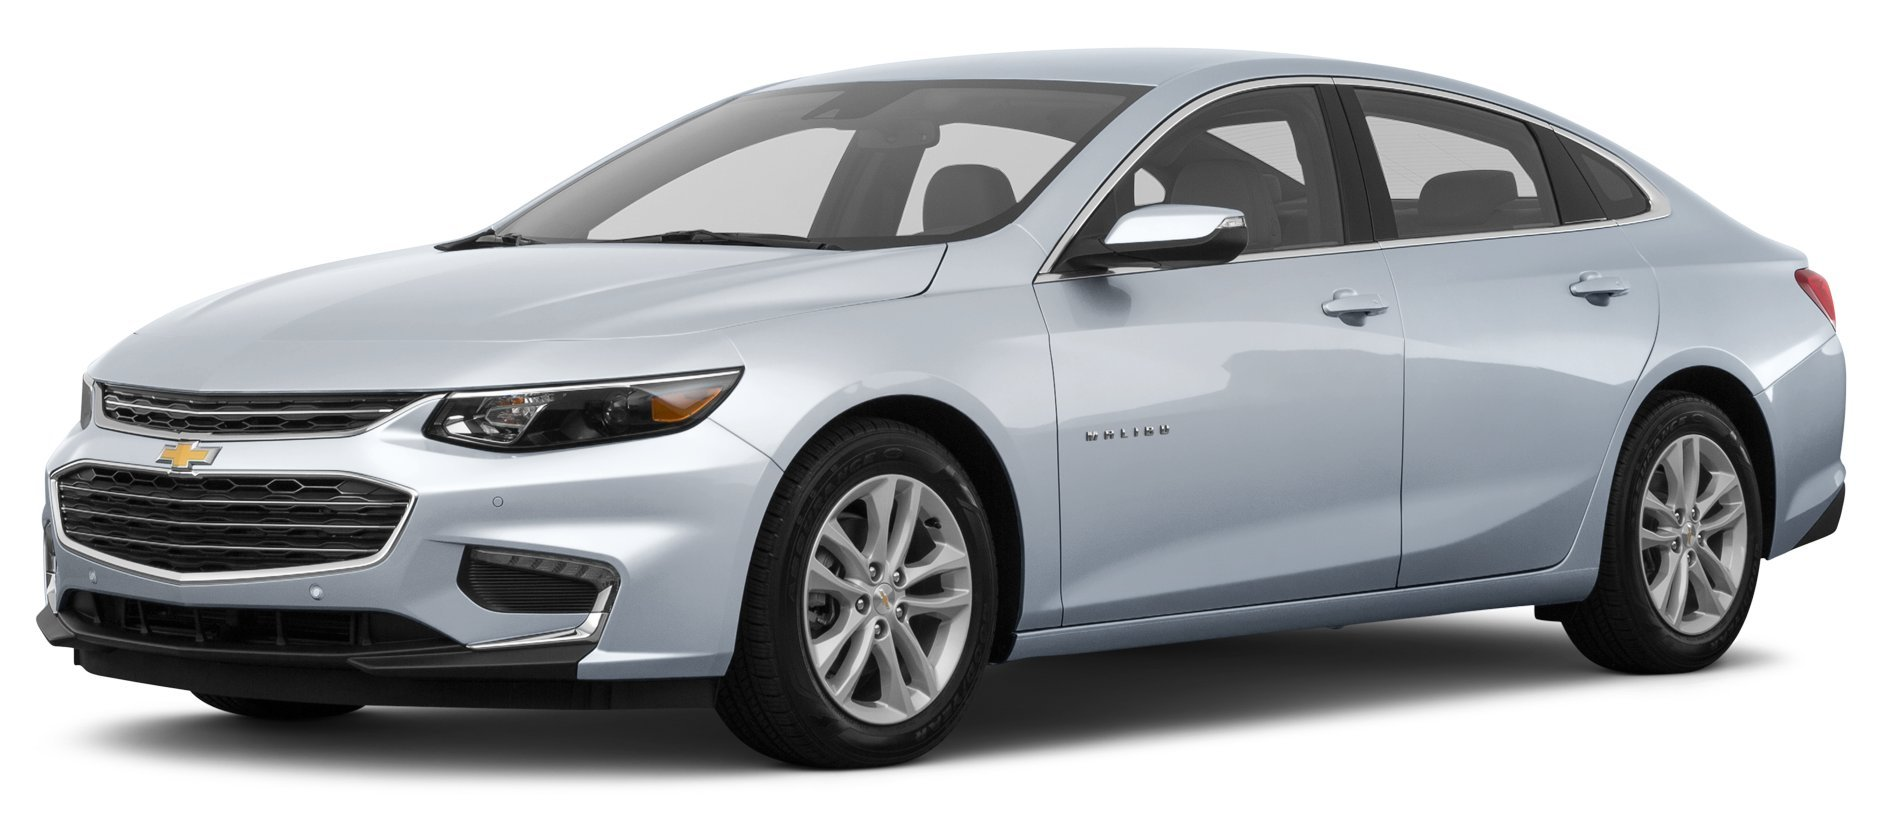 Amazon.com: 2017 Chevrolet Malibu Reviews, Images, and Specs: Vehicles